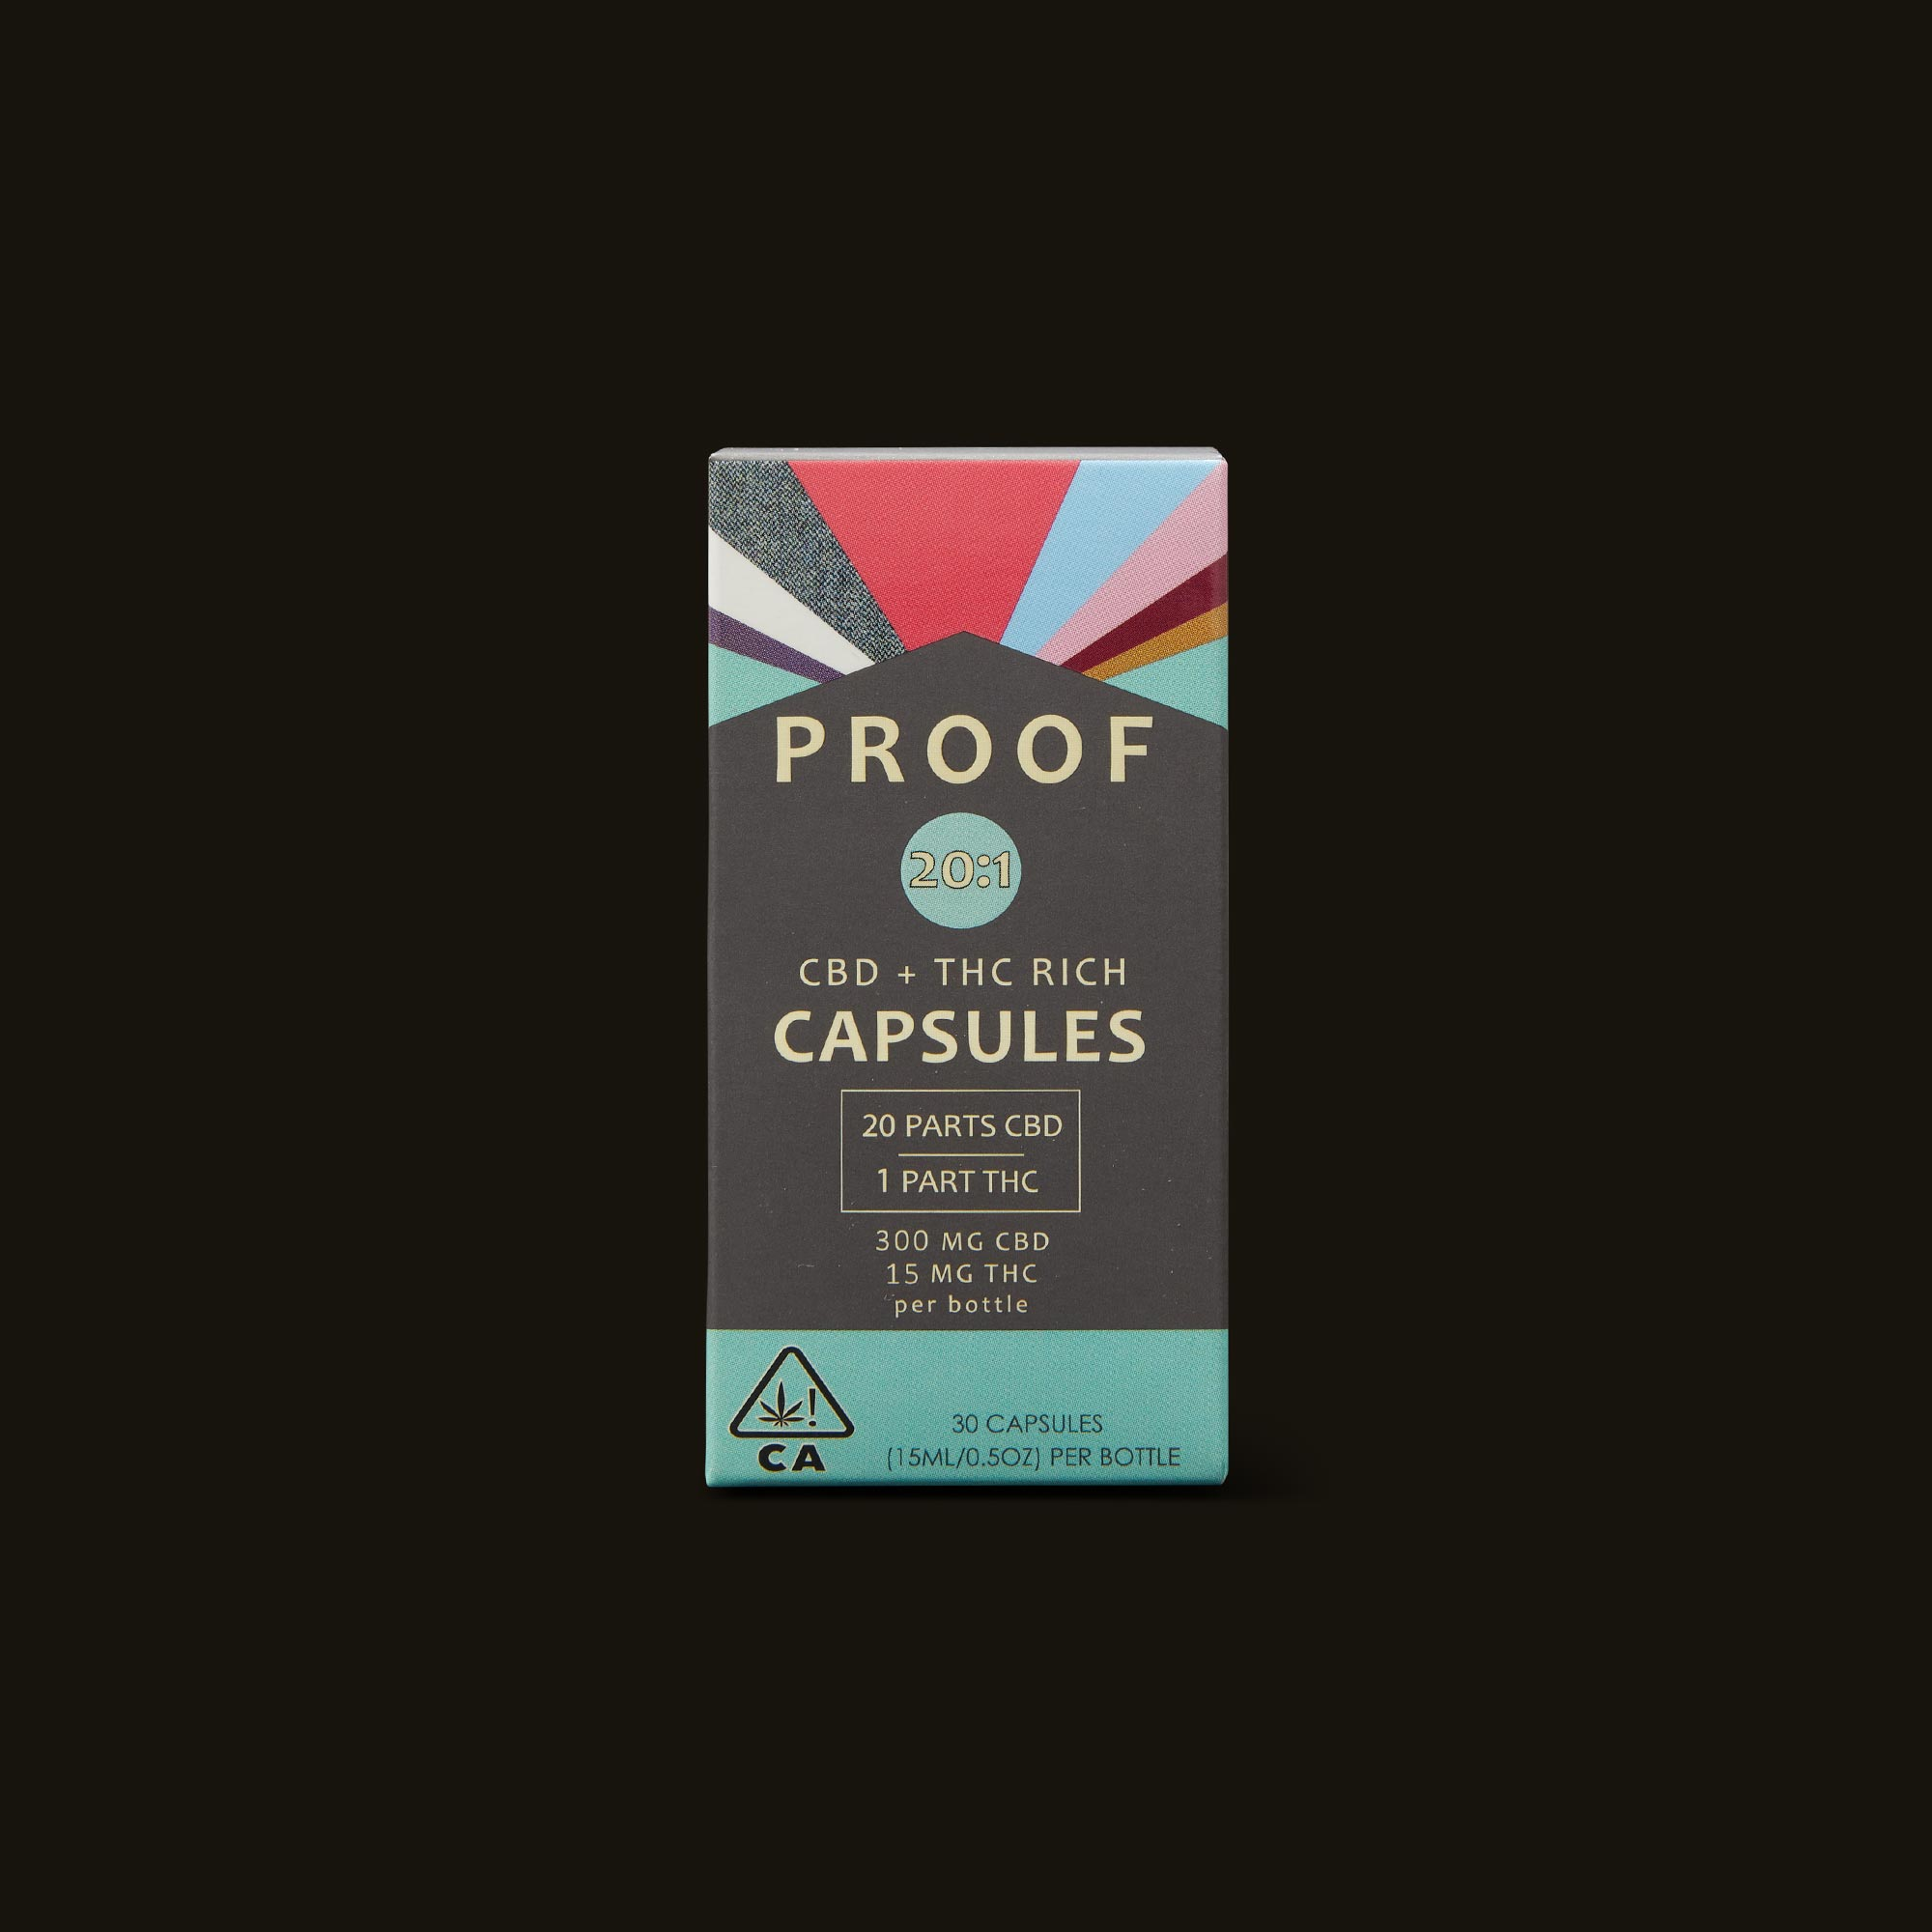 Proof 20:1 CBD:THC Capsules Front Packaging